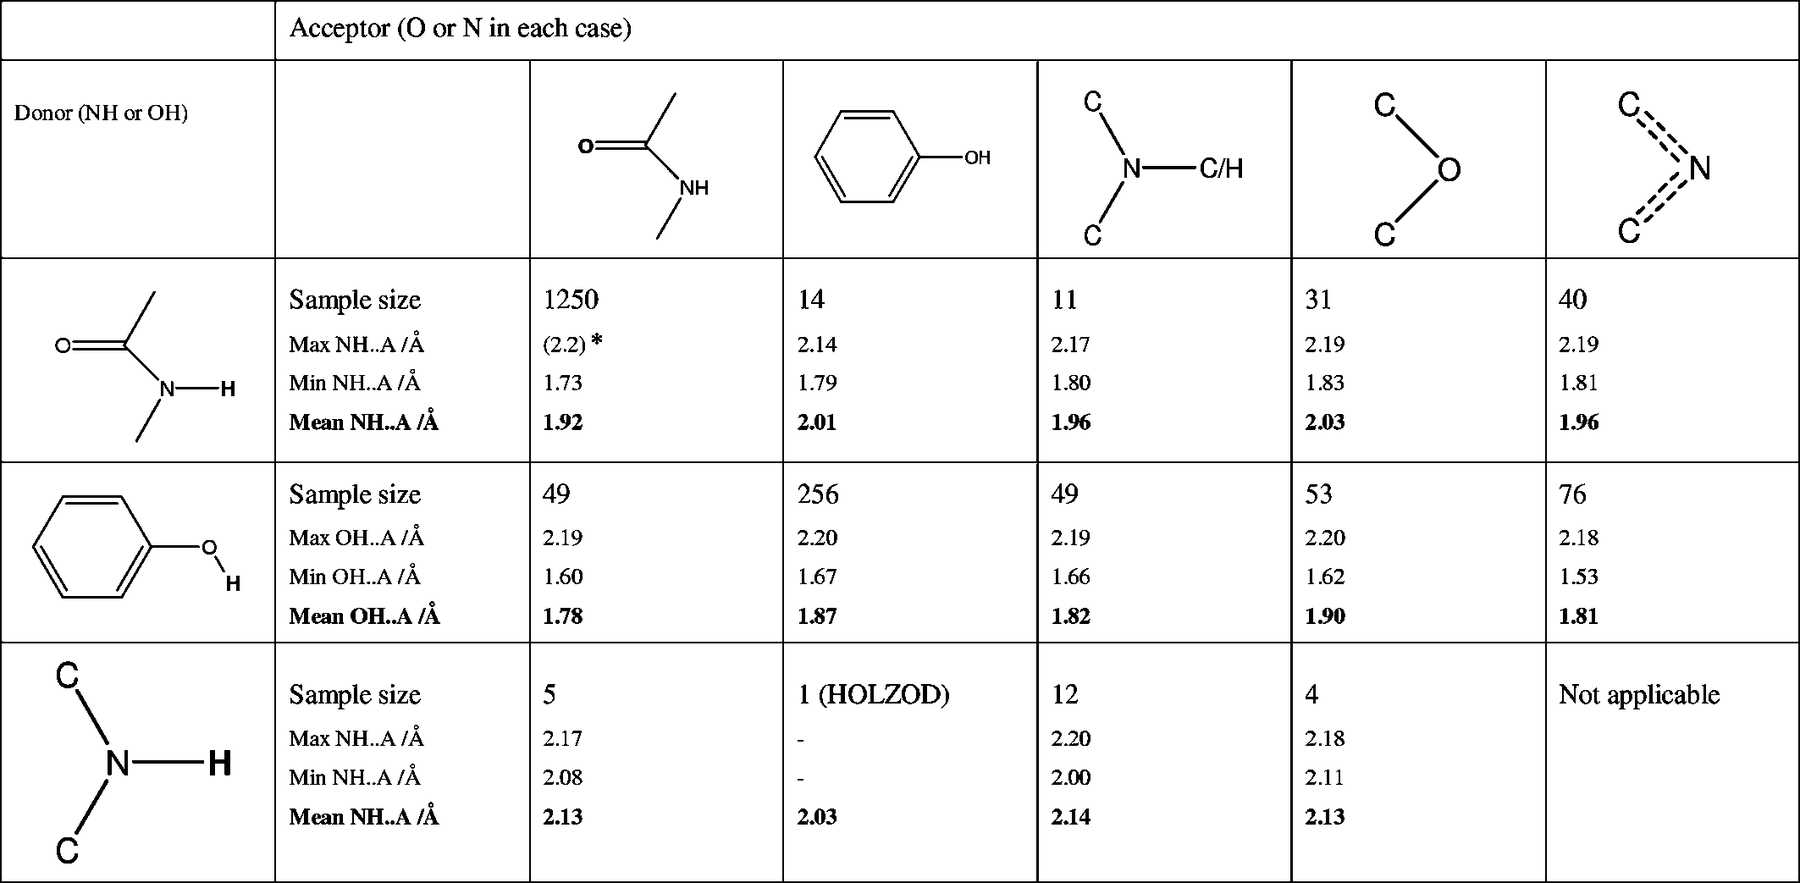 Iucr The Formation Of Paracetamol Acetaminophen Adducts With Hydrogen Bond Acceptors